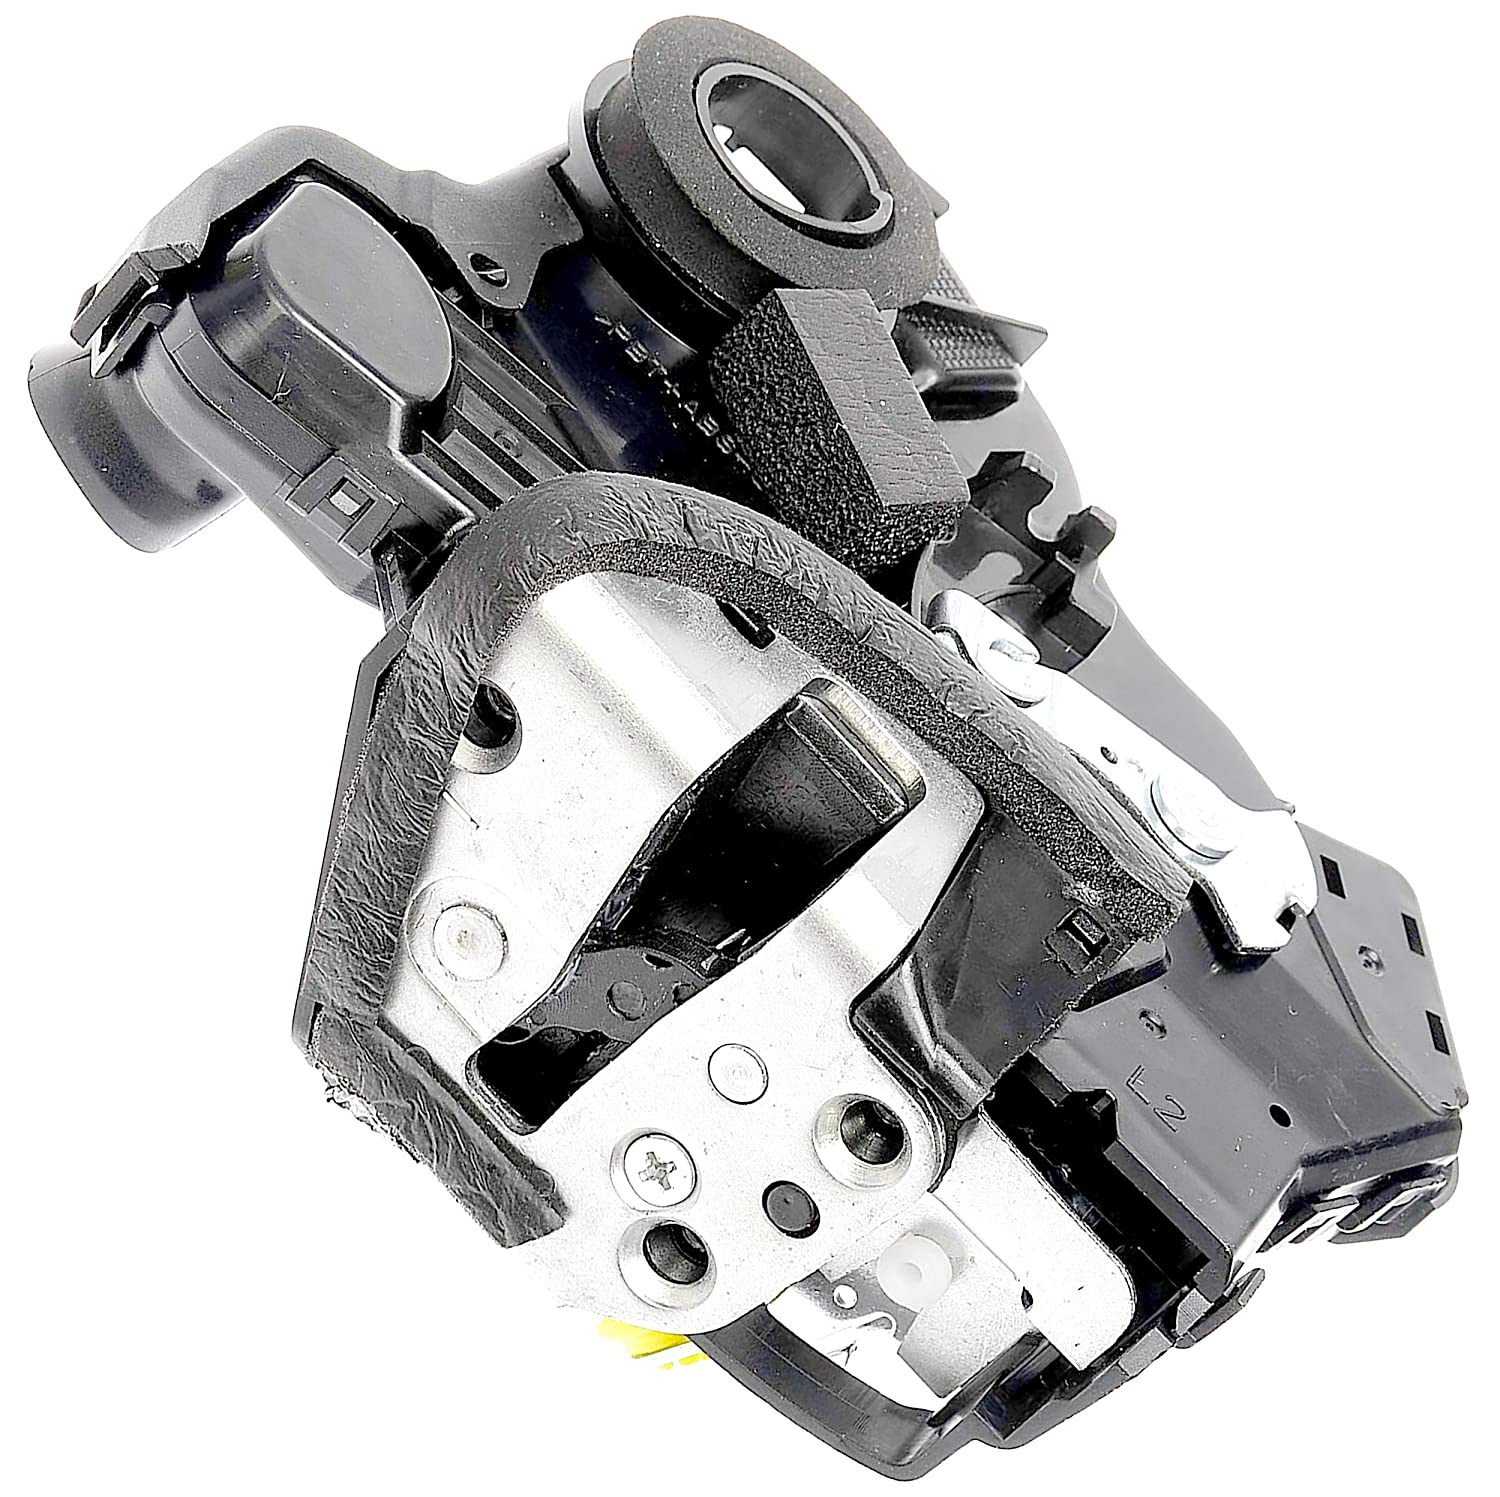 APDTY 042512 Door Latch With Integrated Lock Actuator Motor Fits Front Left Driver-Side on Select Toyota Lexus (Replaces 69040-0C050, 69040-06180, 69040-42250, 6904006180, 690400C050, 6904042250)